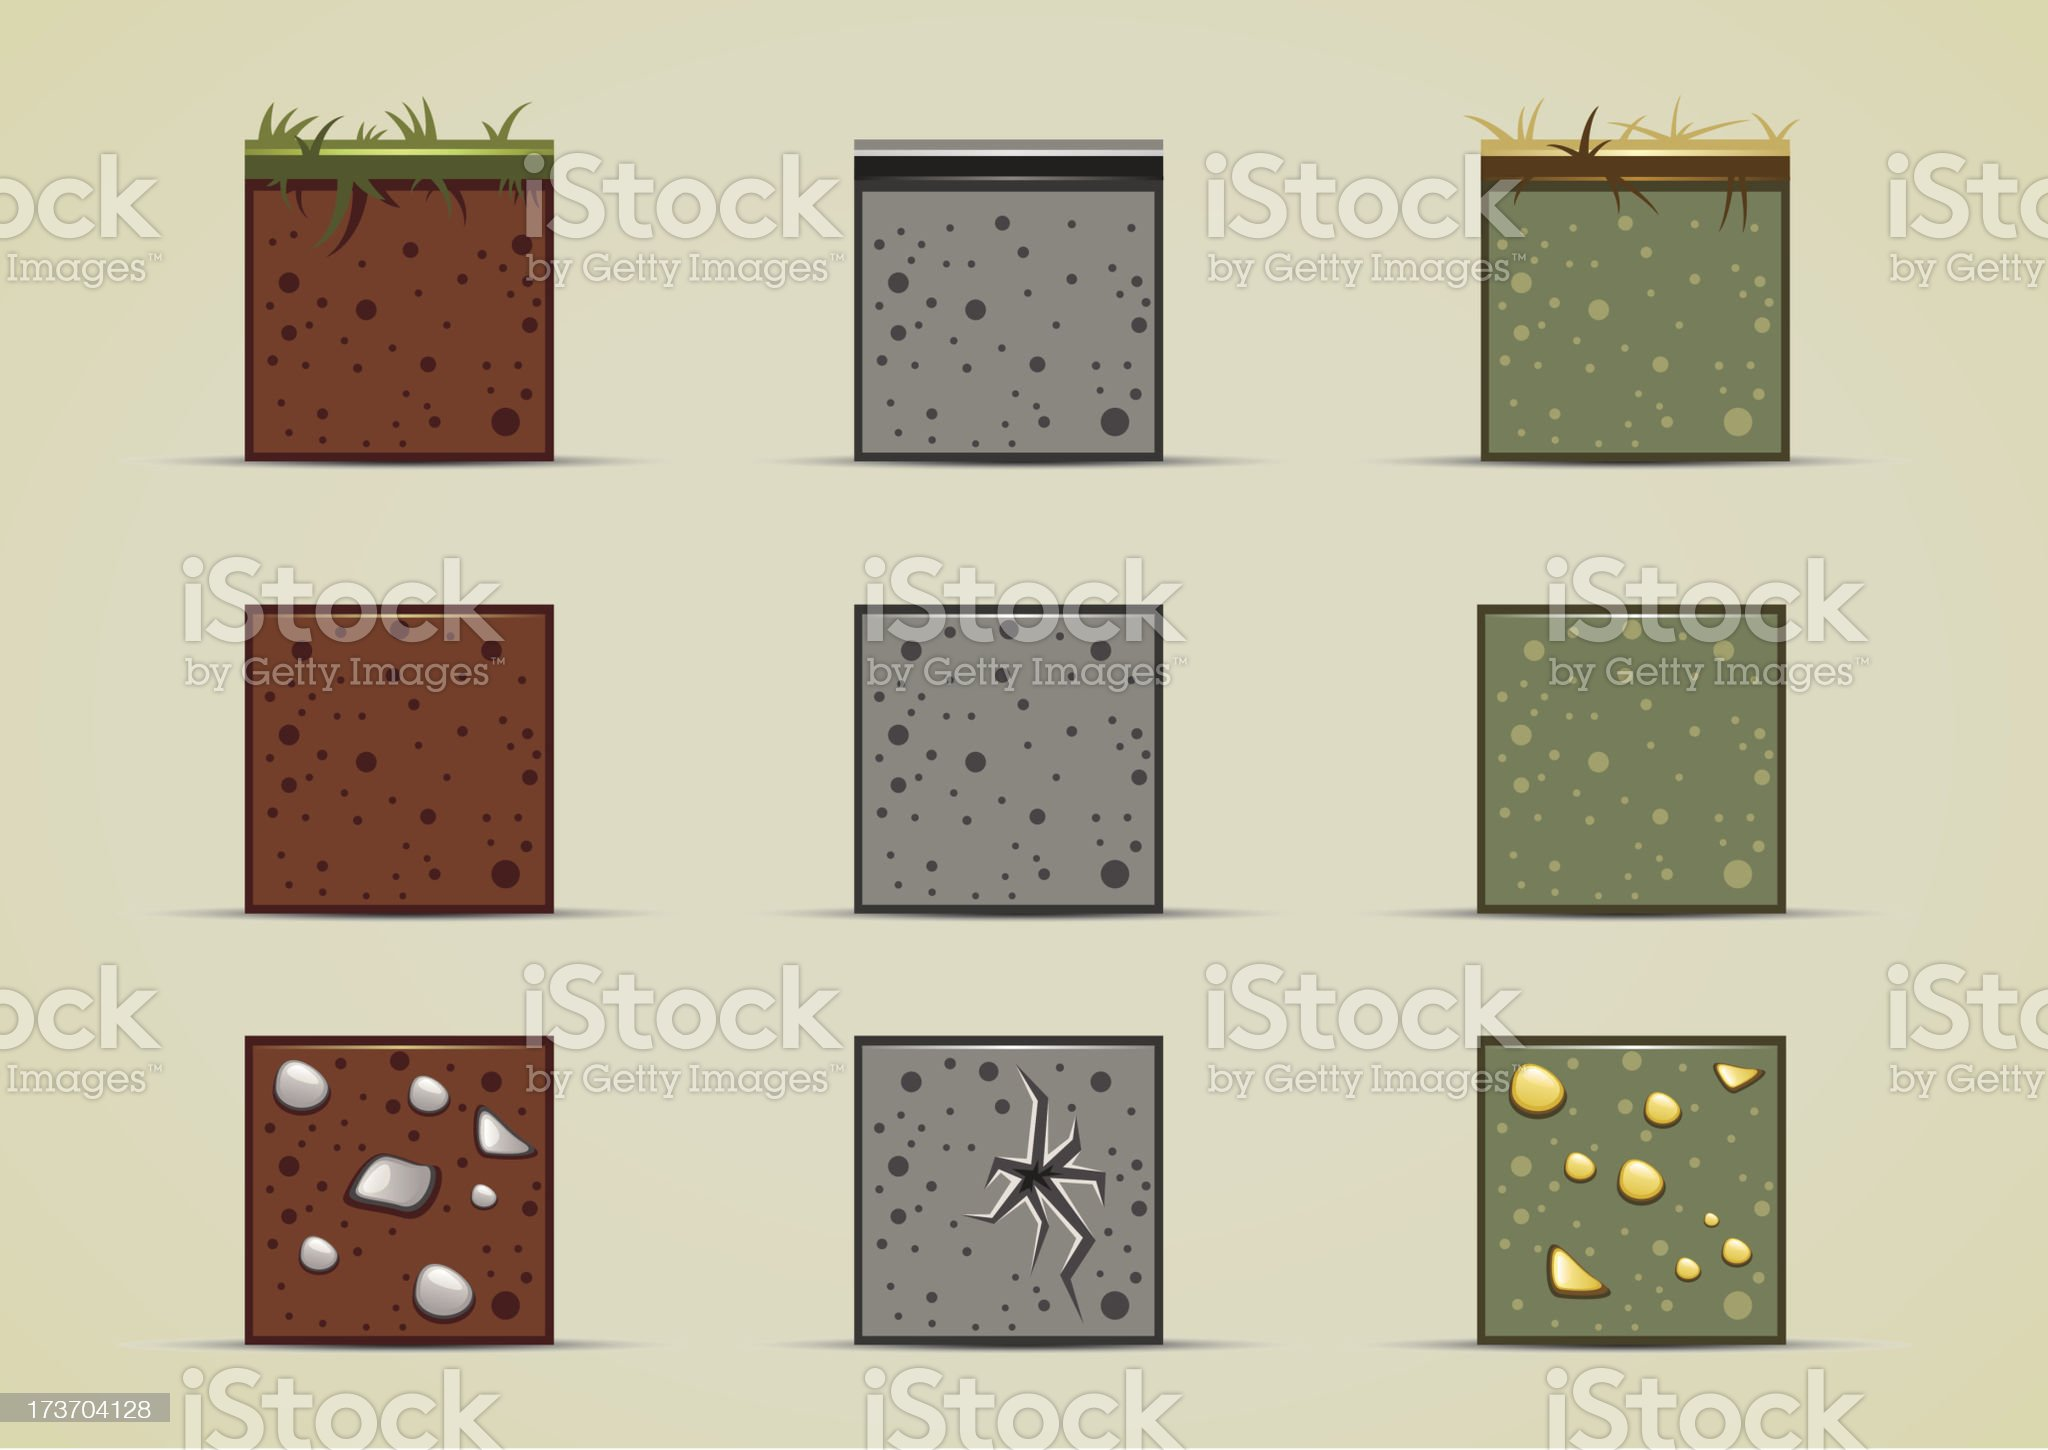 ground sprites collection royalty-free stock vector art